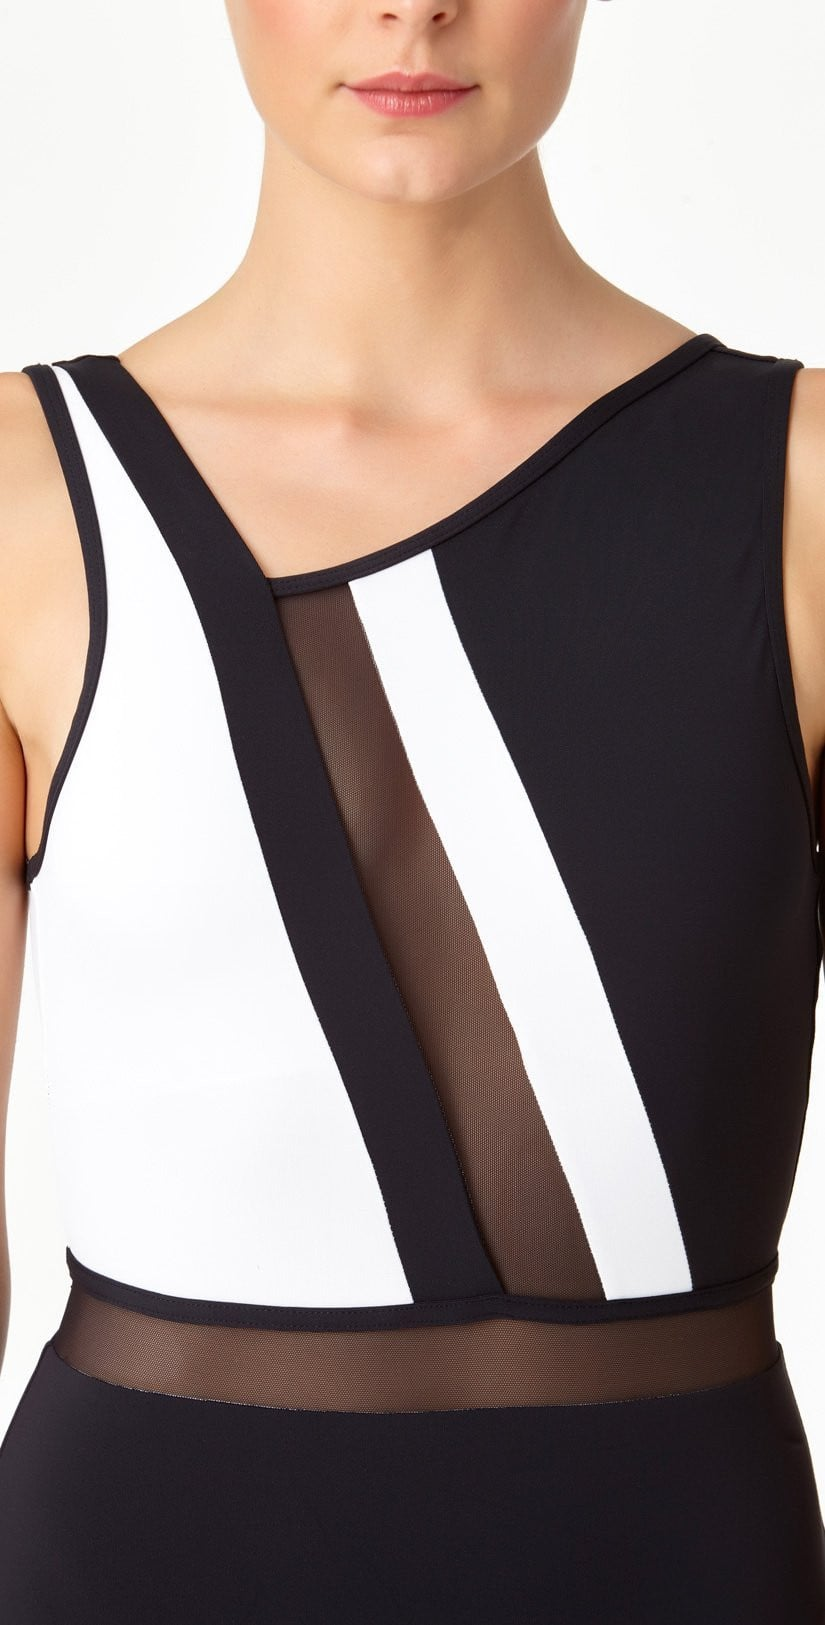 Anne Cole Hot Mesh Asymmetrical One Piece 18MO08004-Black/White up close view